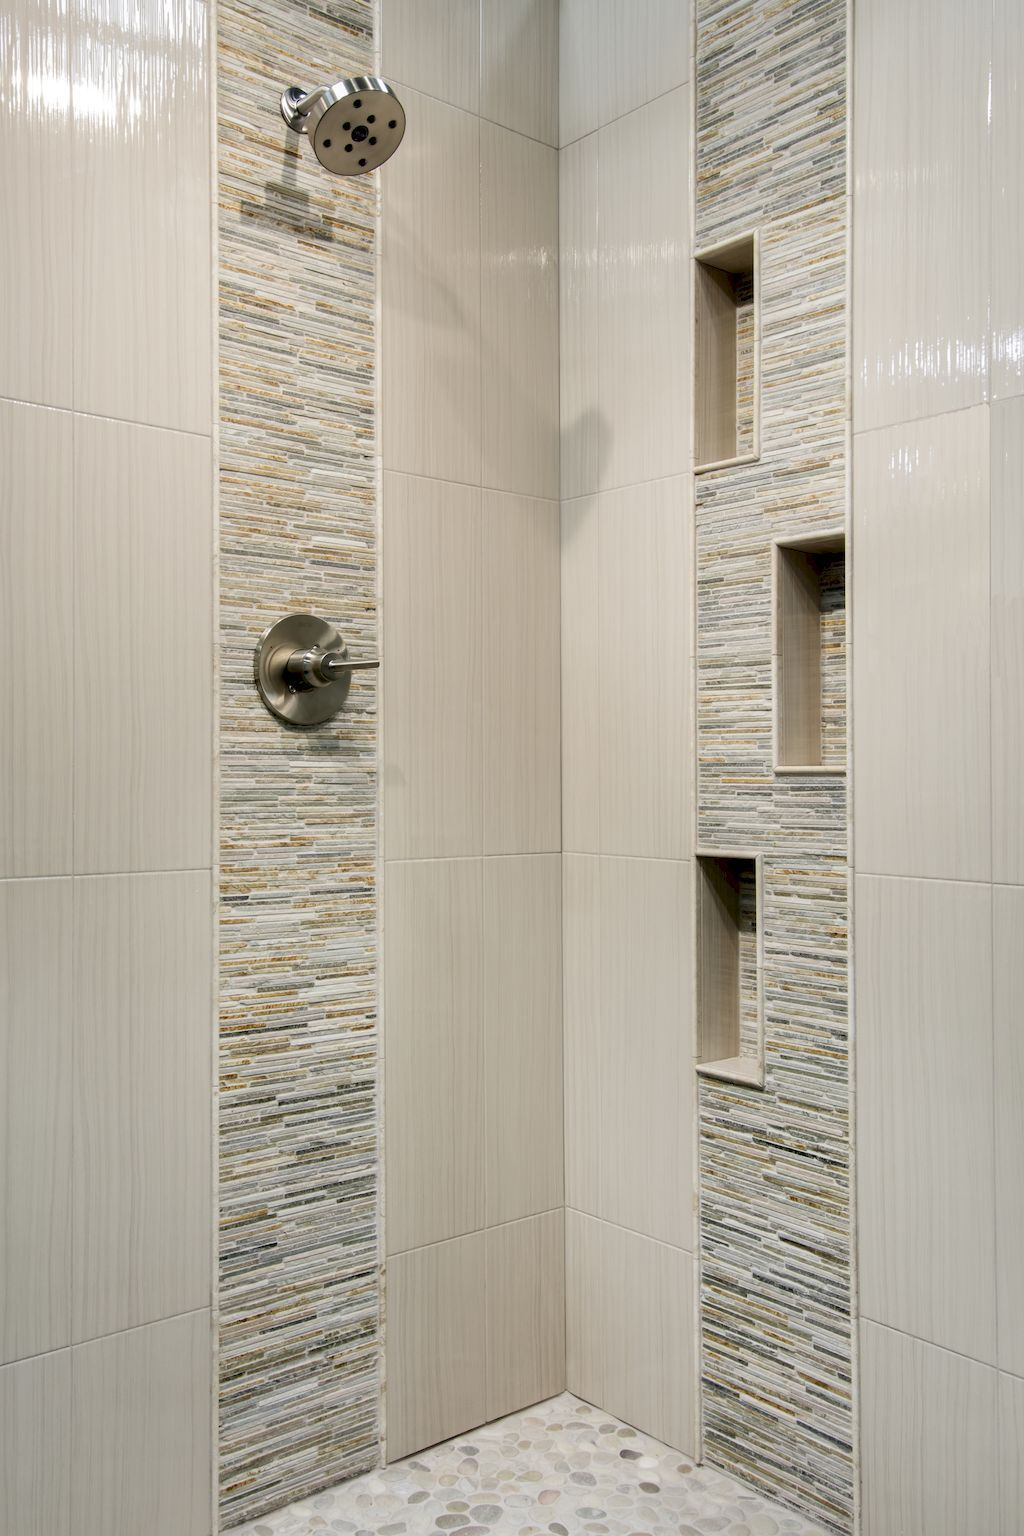 50 Beautiful Bathroom Shower Tile Ideas 39 Small Bathroom Tiles Bathroom Remodel Master Modern Small Bathrooms